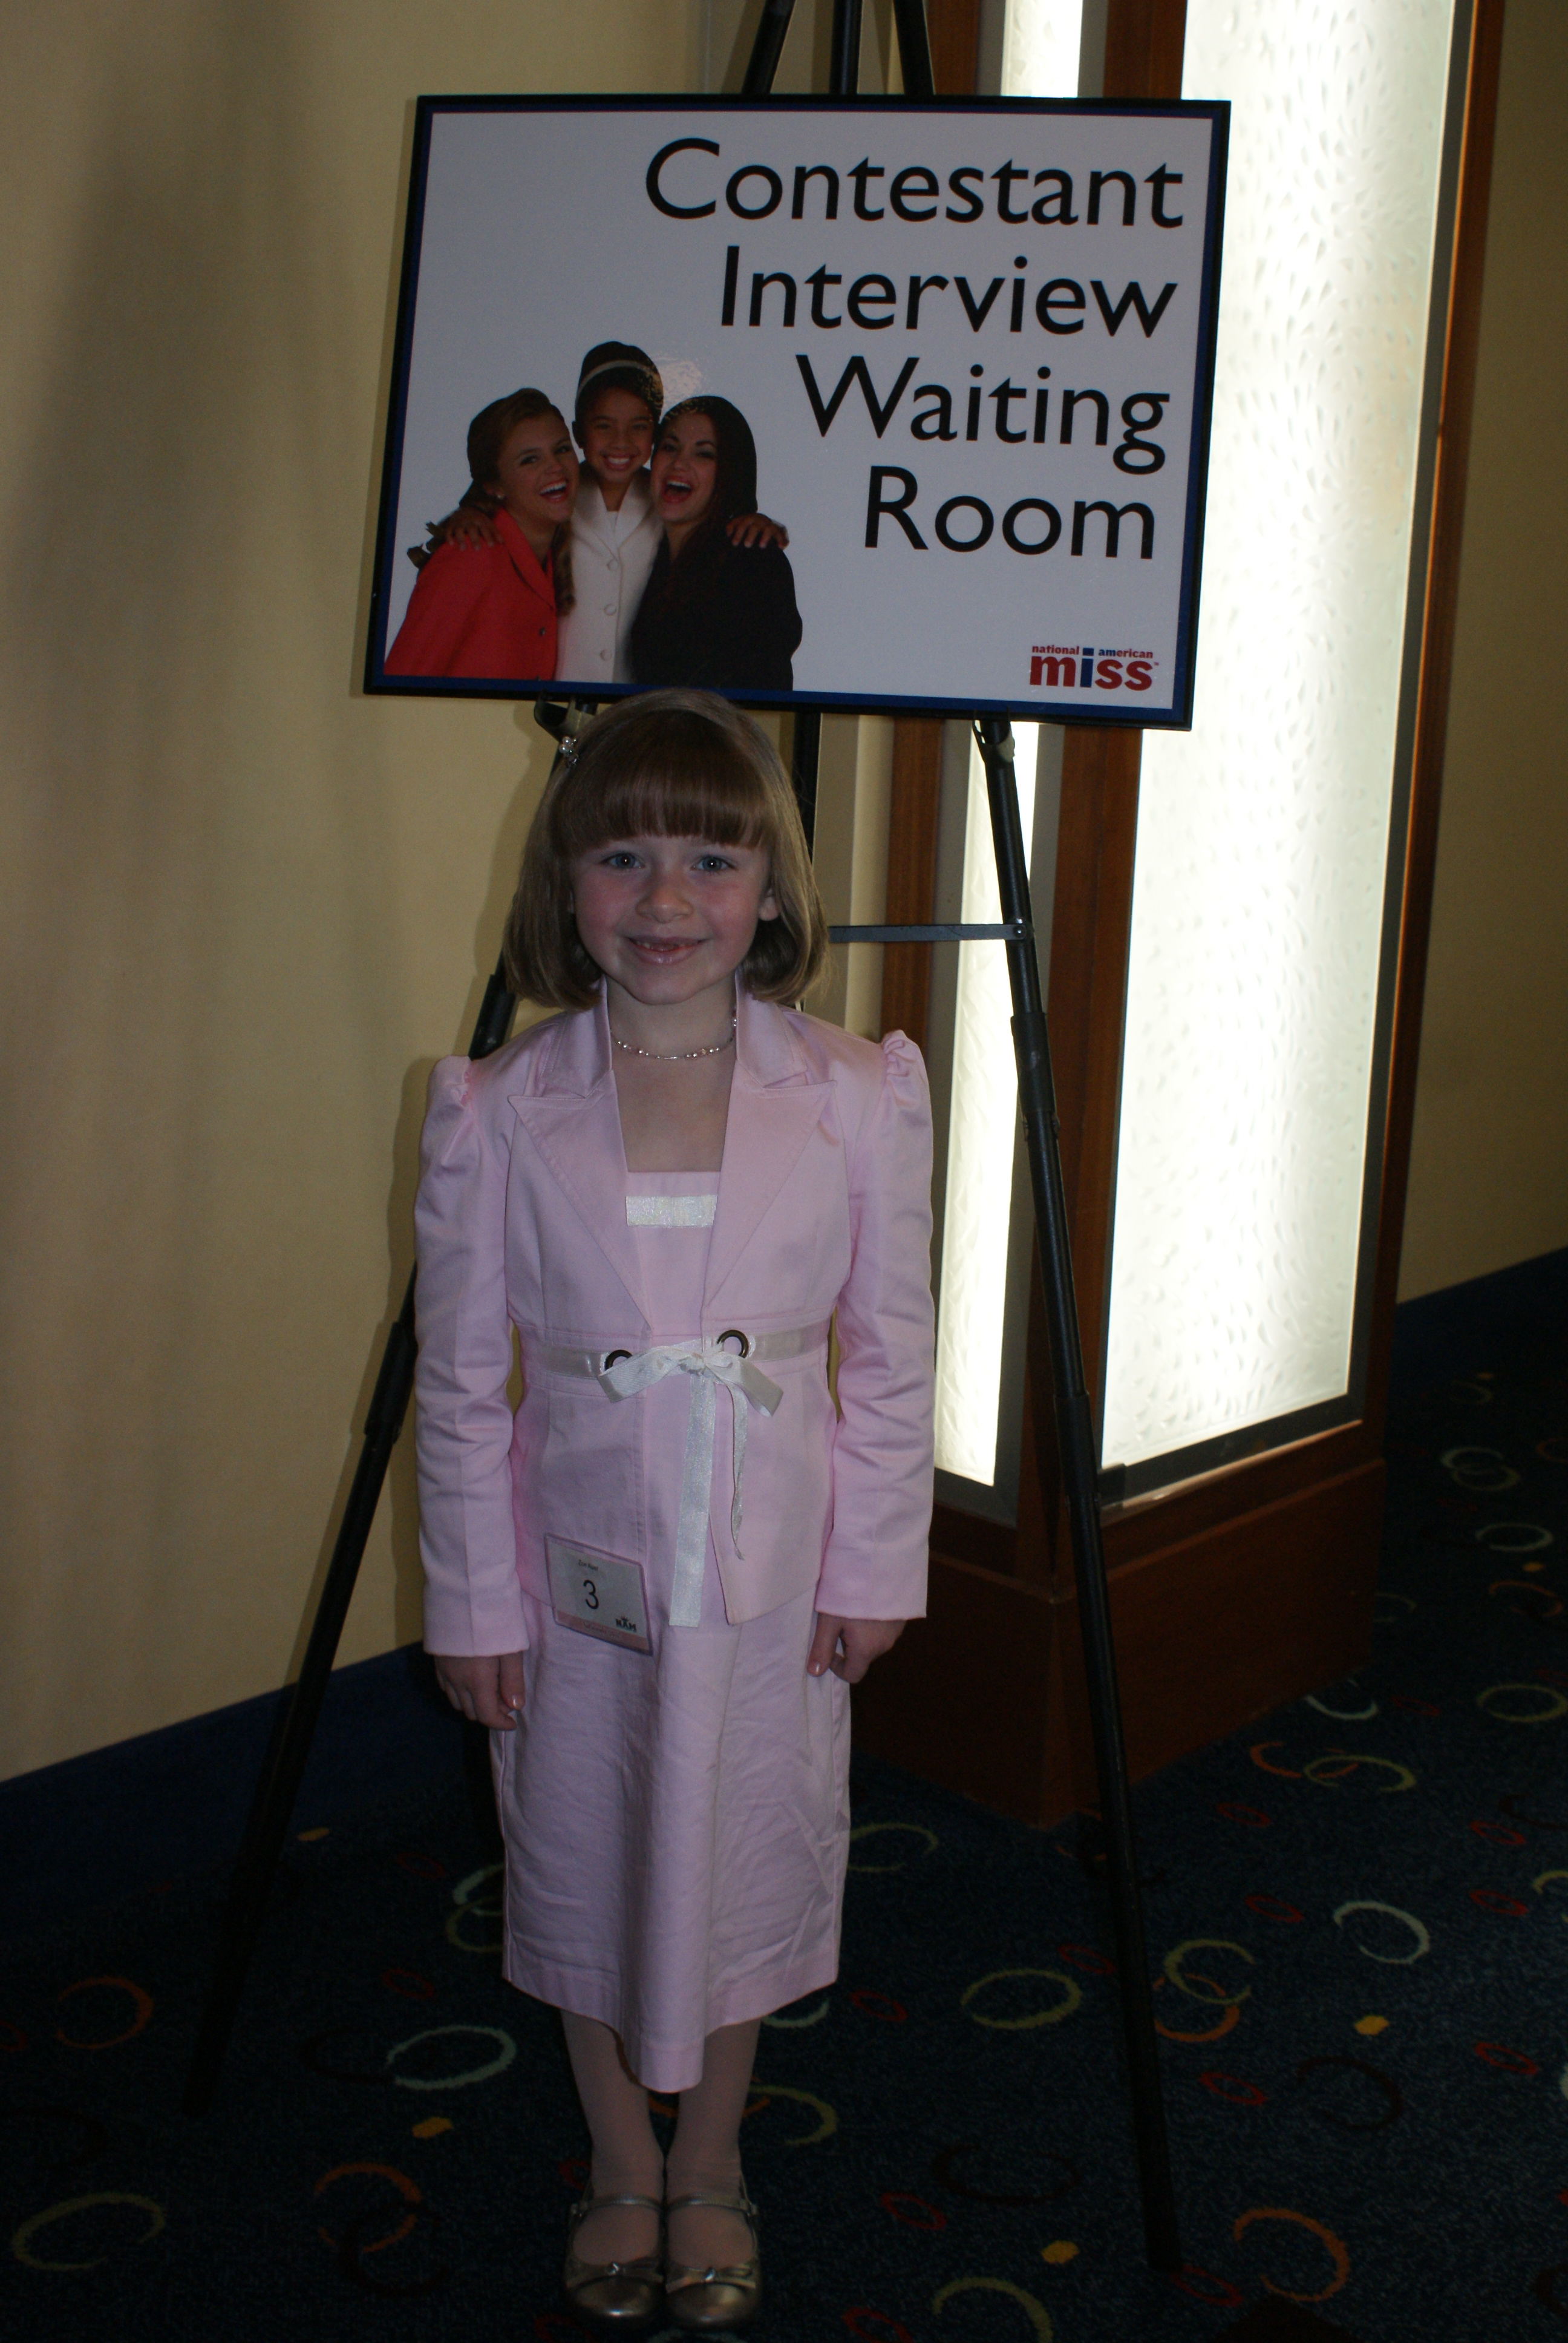 Princess Zoe A In Her Interview Suit National American